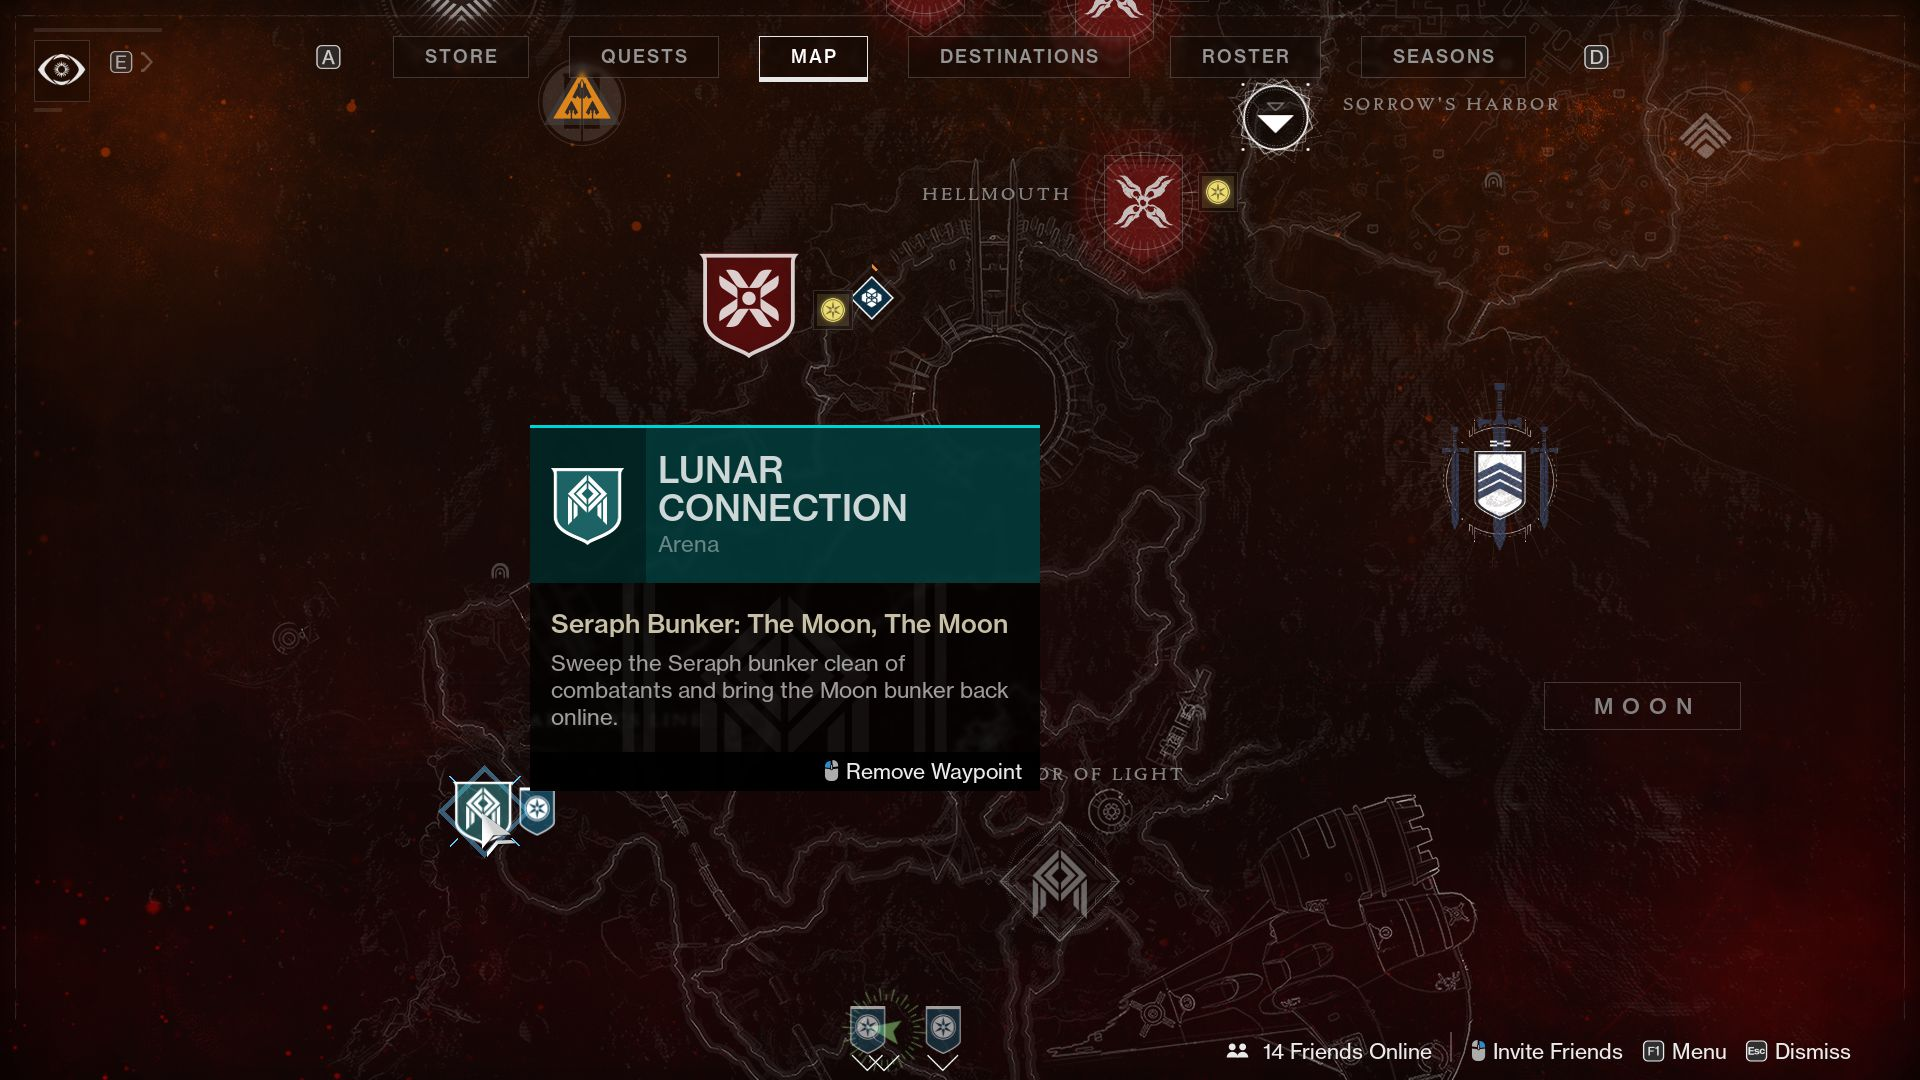 Image showing where to start the Lunar Connection arena mission in Destiny 2.